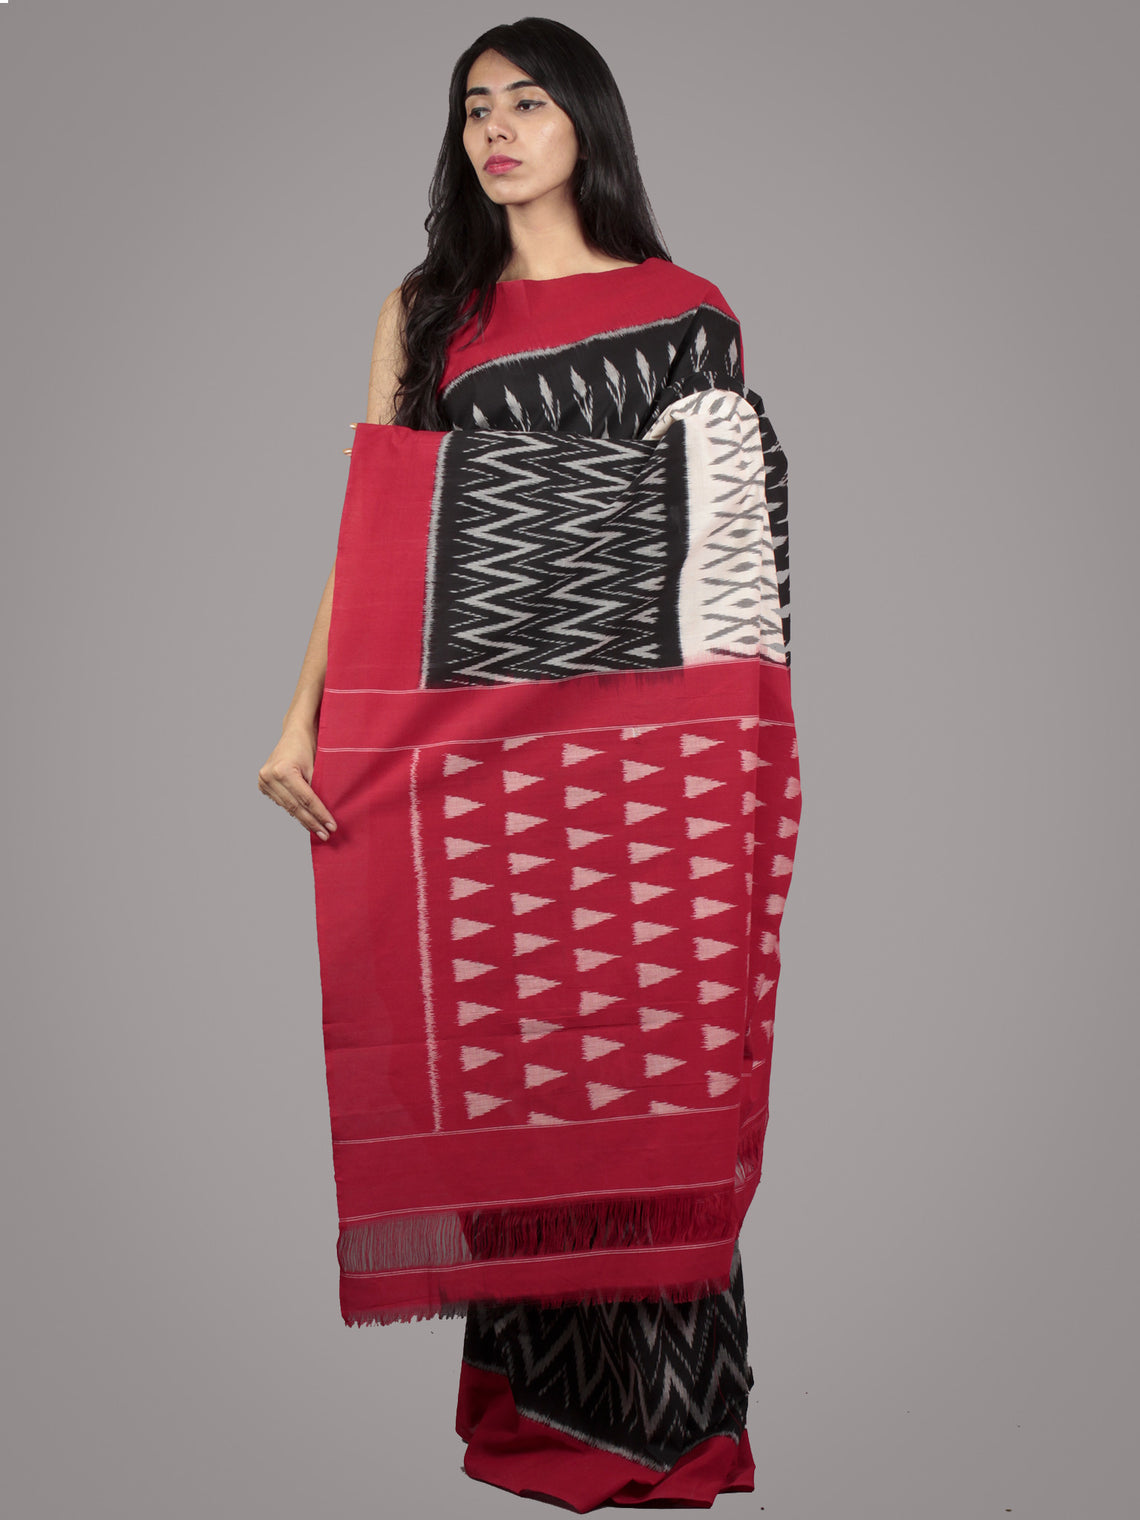 Black Ivory Red Grey Ikat Handwoven Pochampally Mercerized Cotton Saree - S031701582